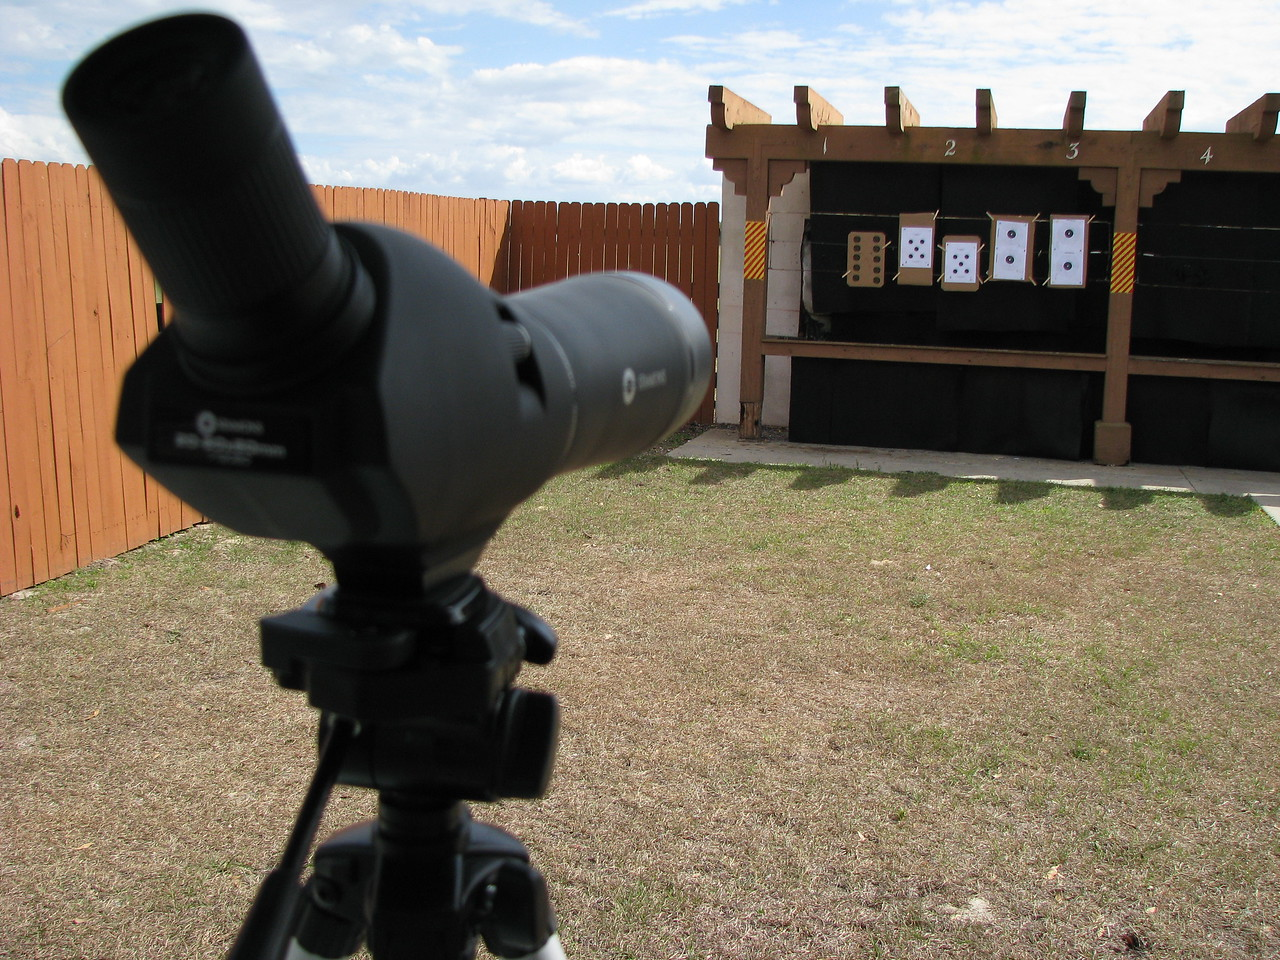 Looking down range, spoting scope to the left